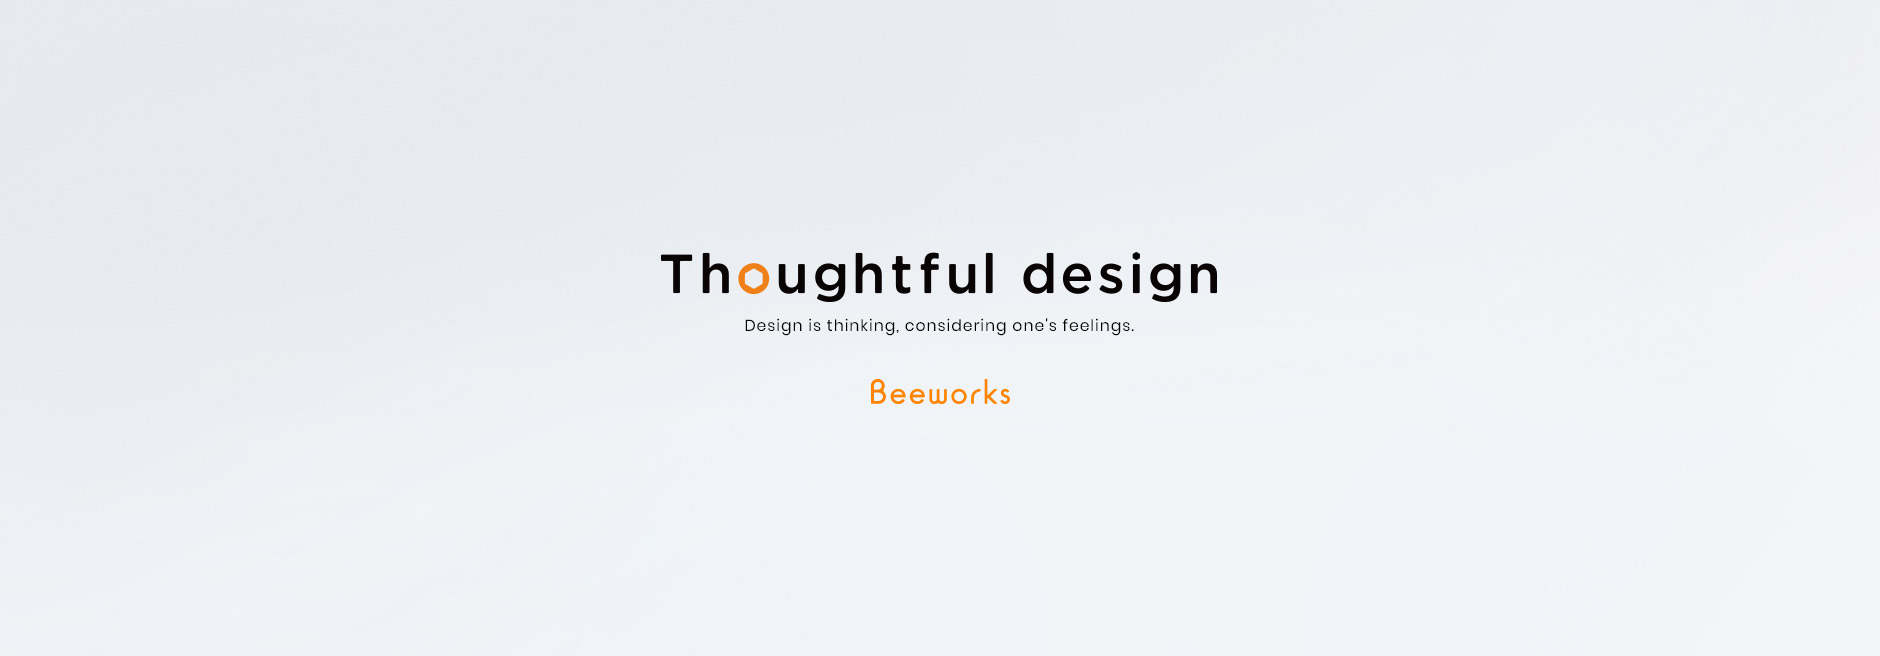 Thoughtful design Beeworks